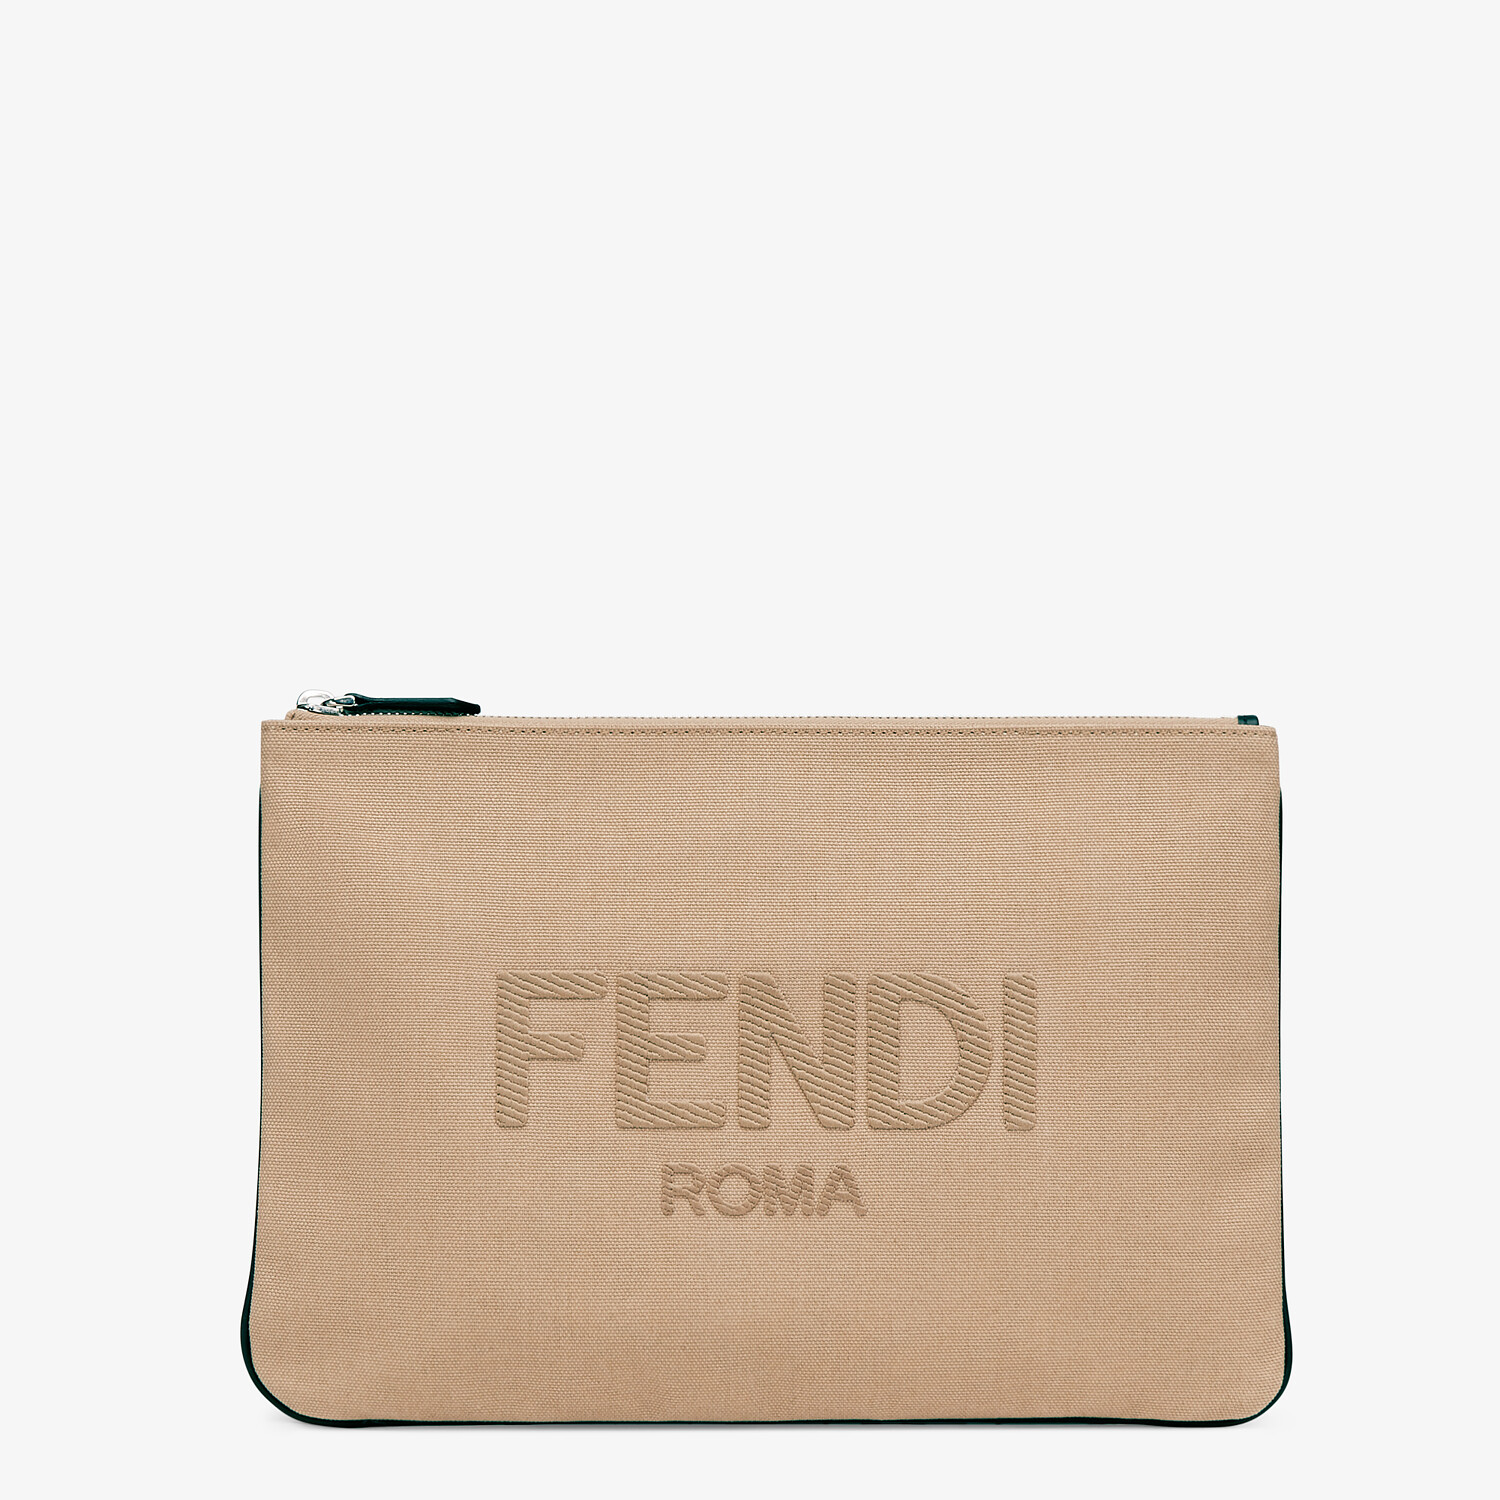 FENDI POUCH - Beige canvas pouch - view 1 detail